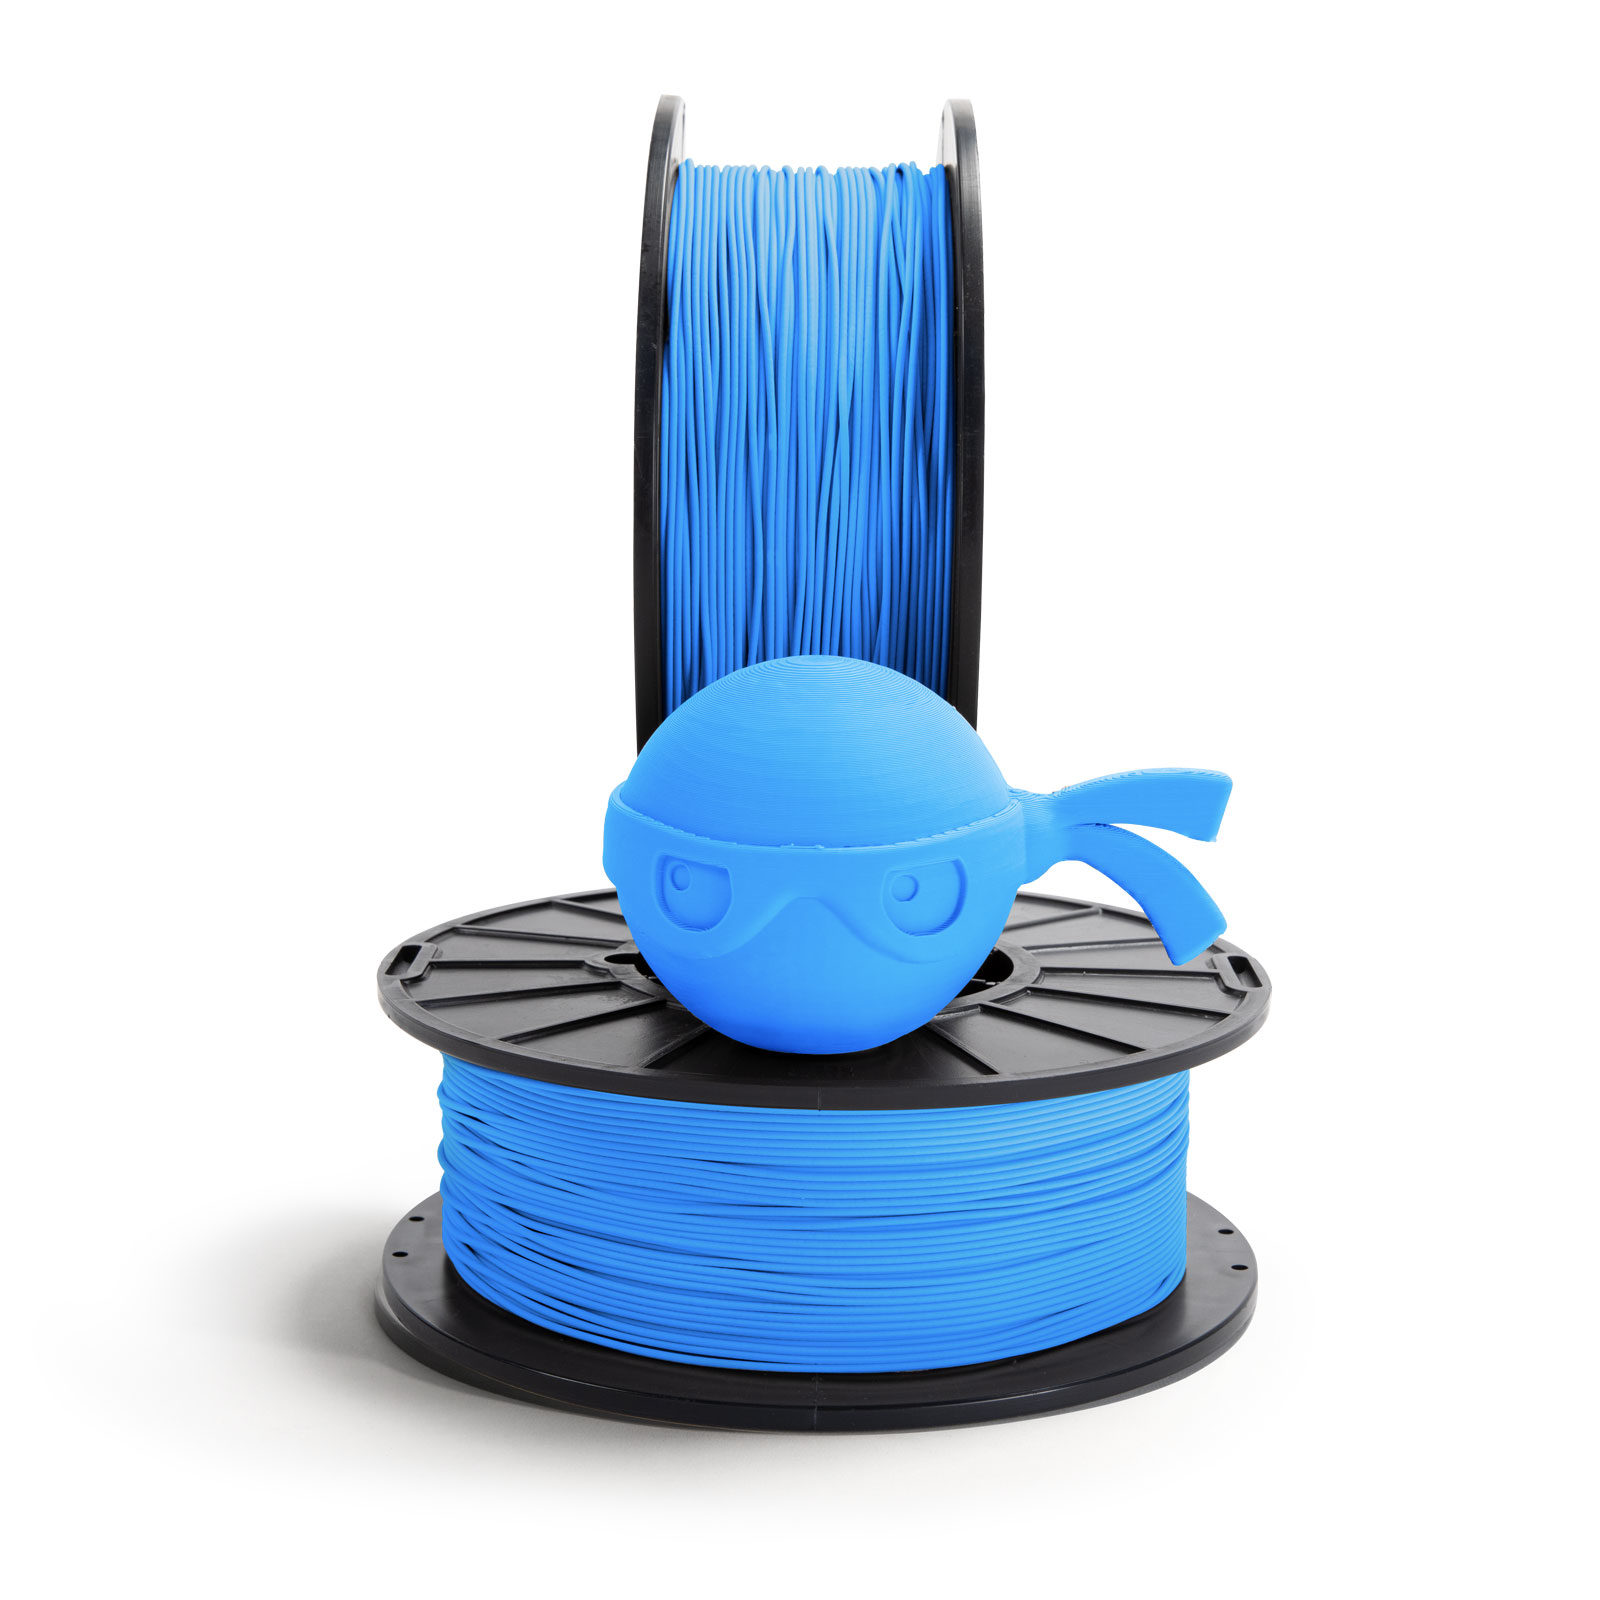 Sky blue ninja head sitting on NinjaTek 3D printing filament spool